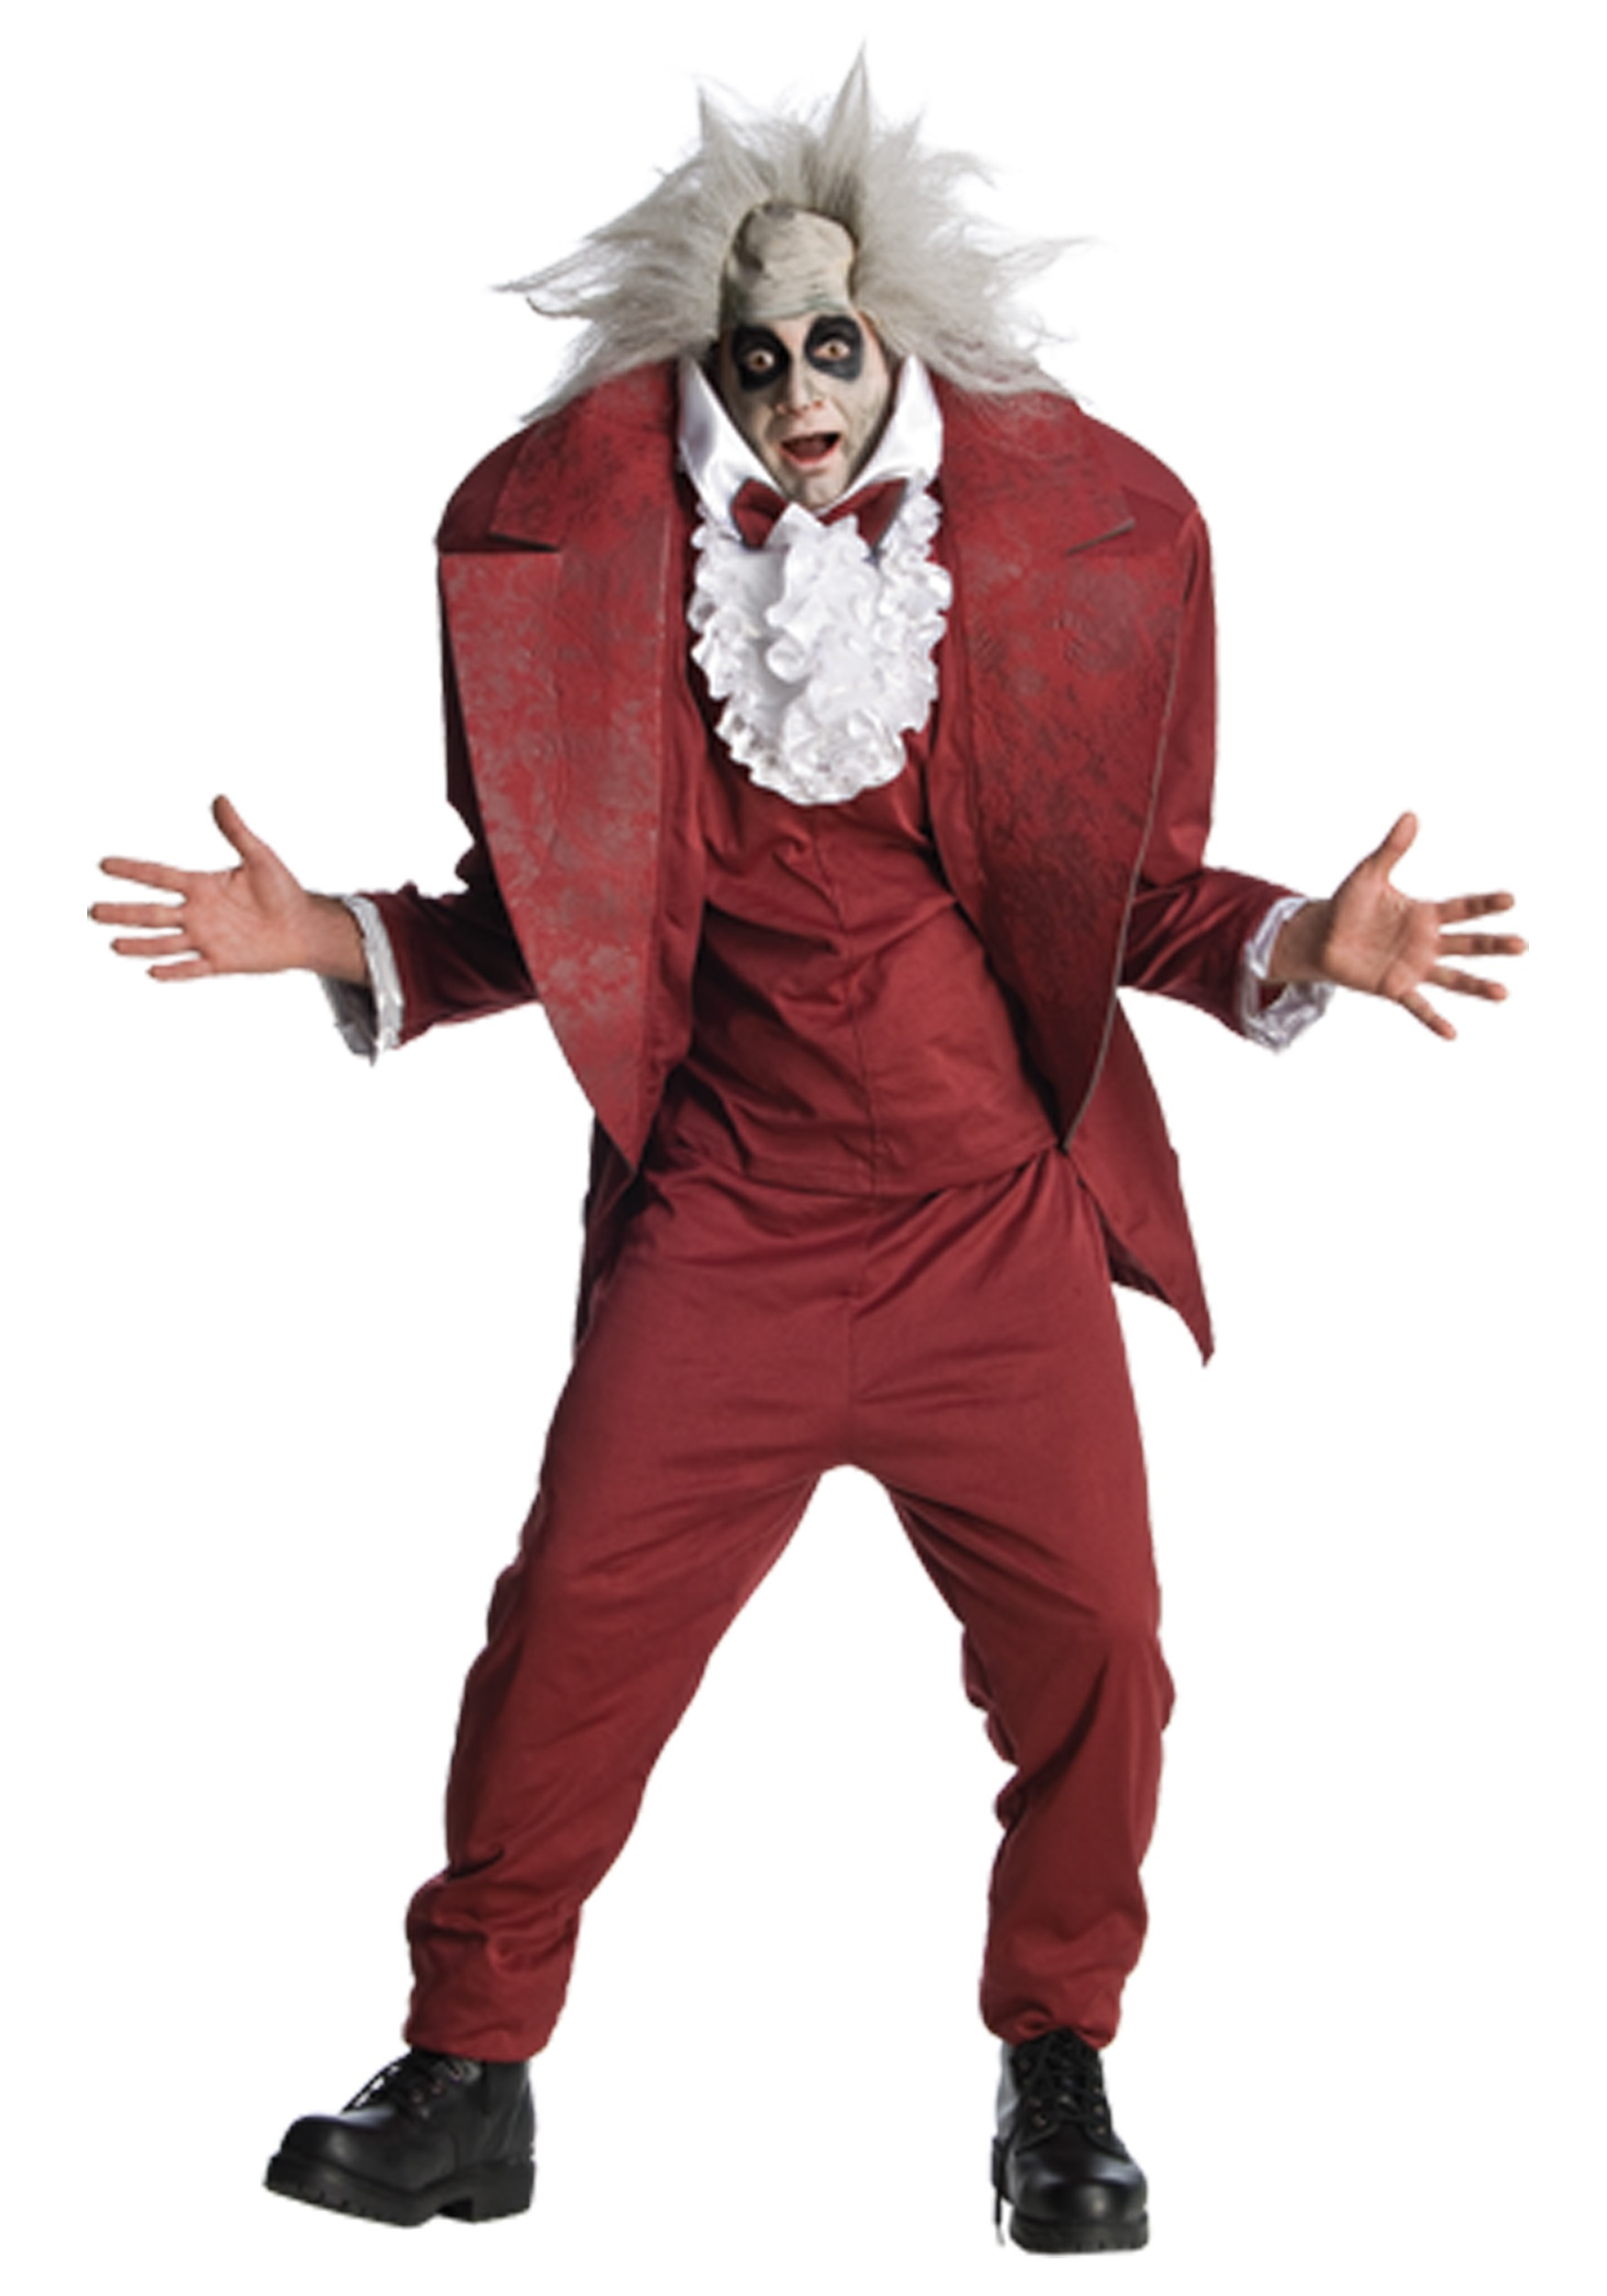 Adult Shrunken Head Beetlejuice Costume  sc 1 st  Halloween Costumes & Beetlejuice Costumes - HalloweenCostumes.com